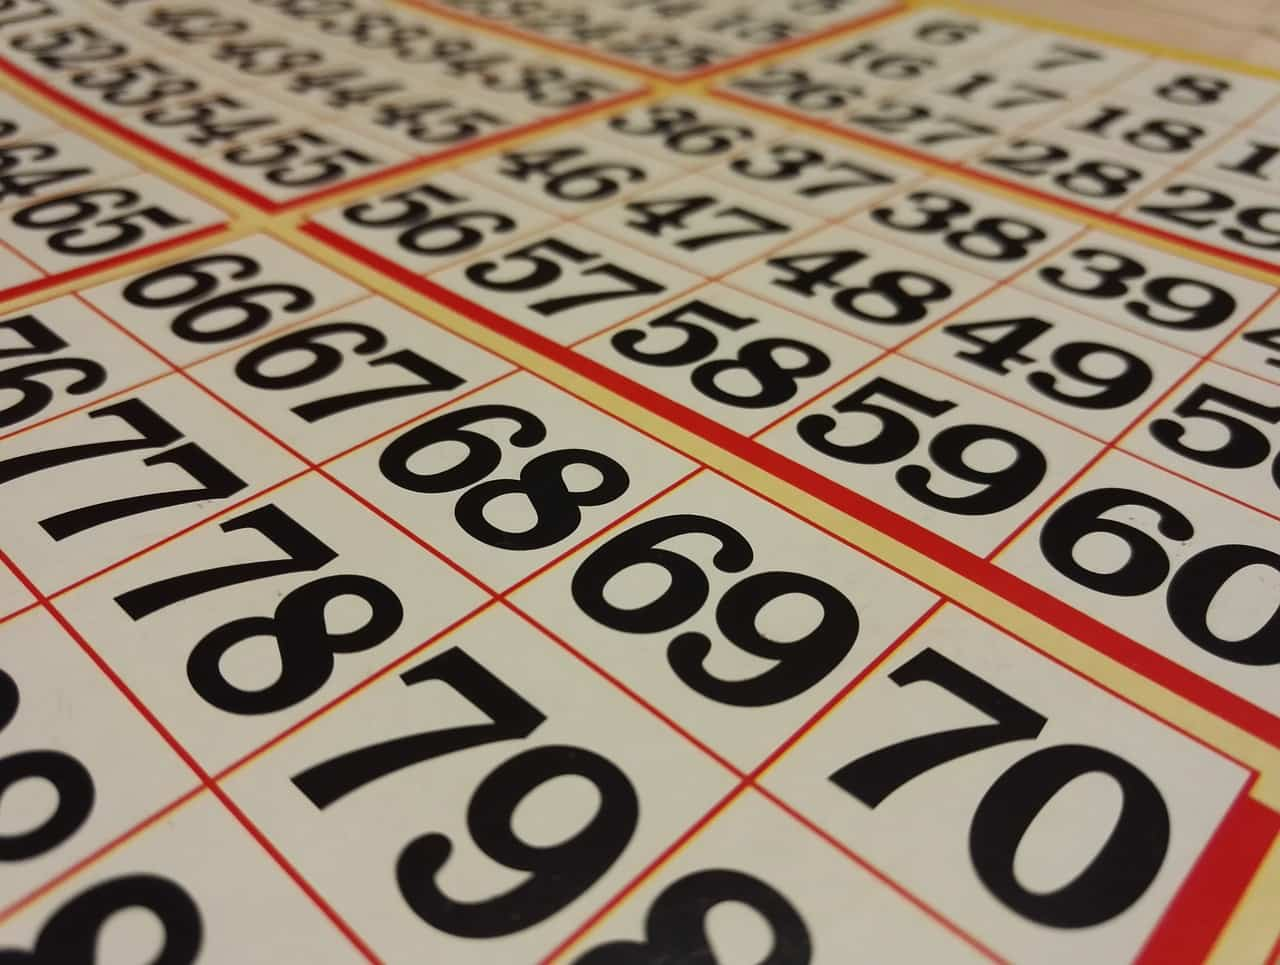 bingo ticket numbers